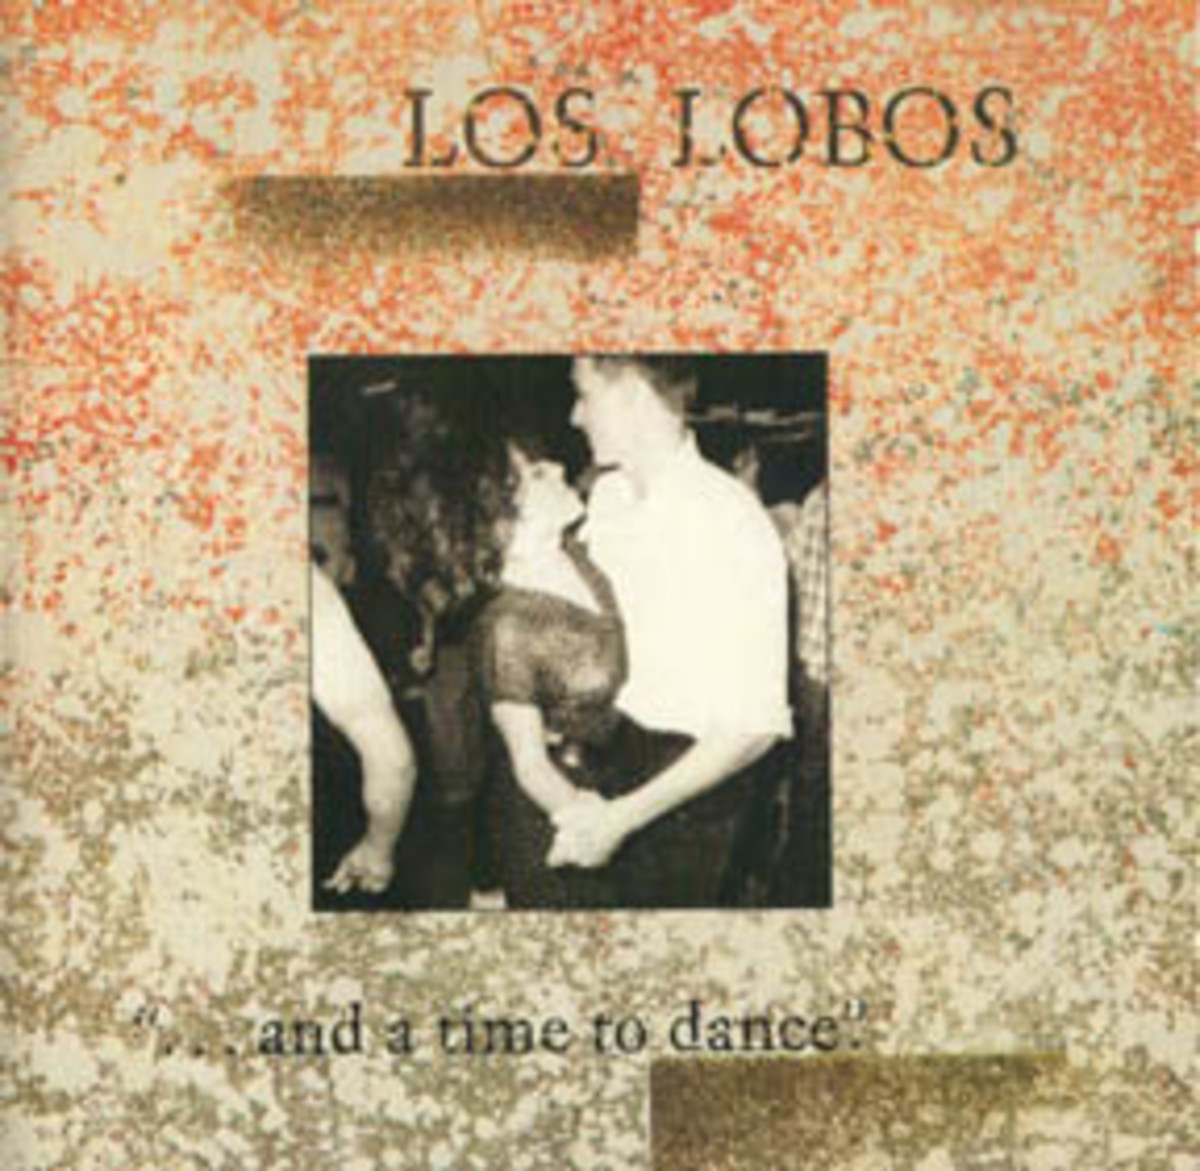 Los Lobos Amd A Time To Dance